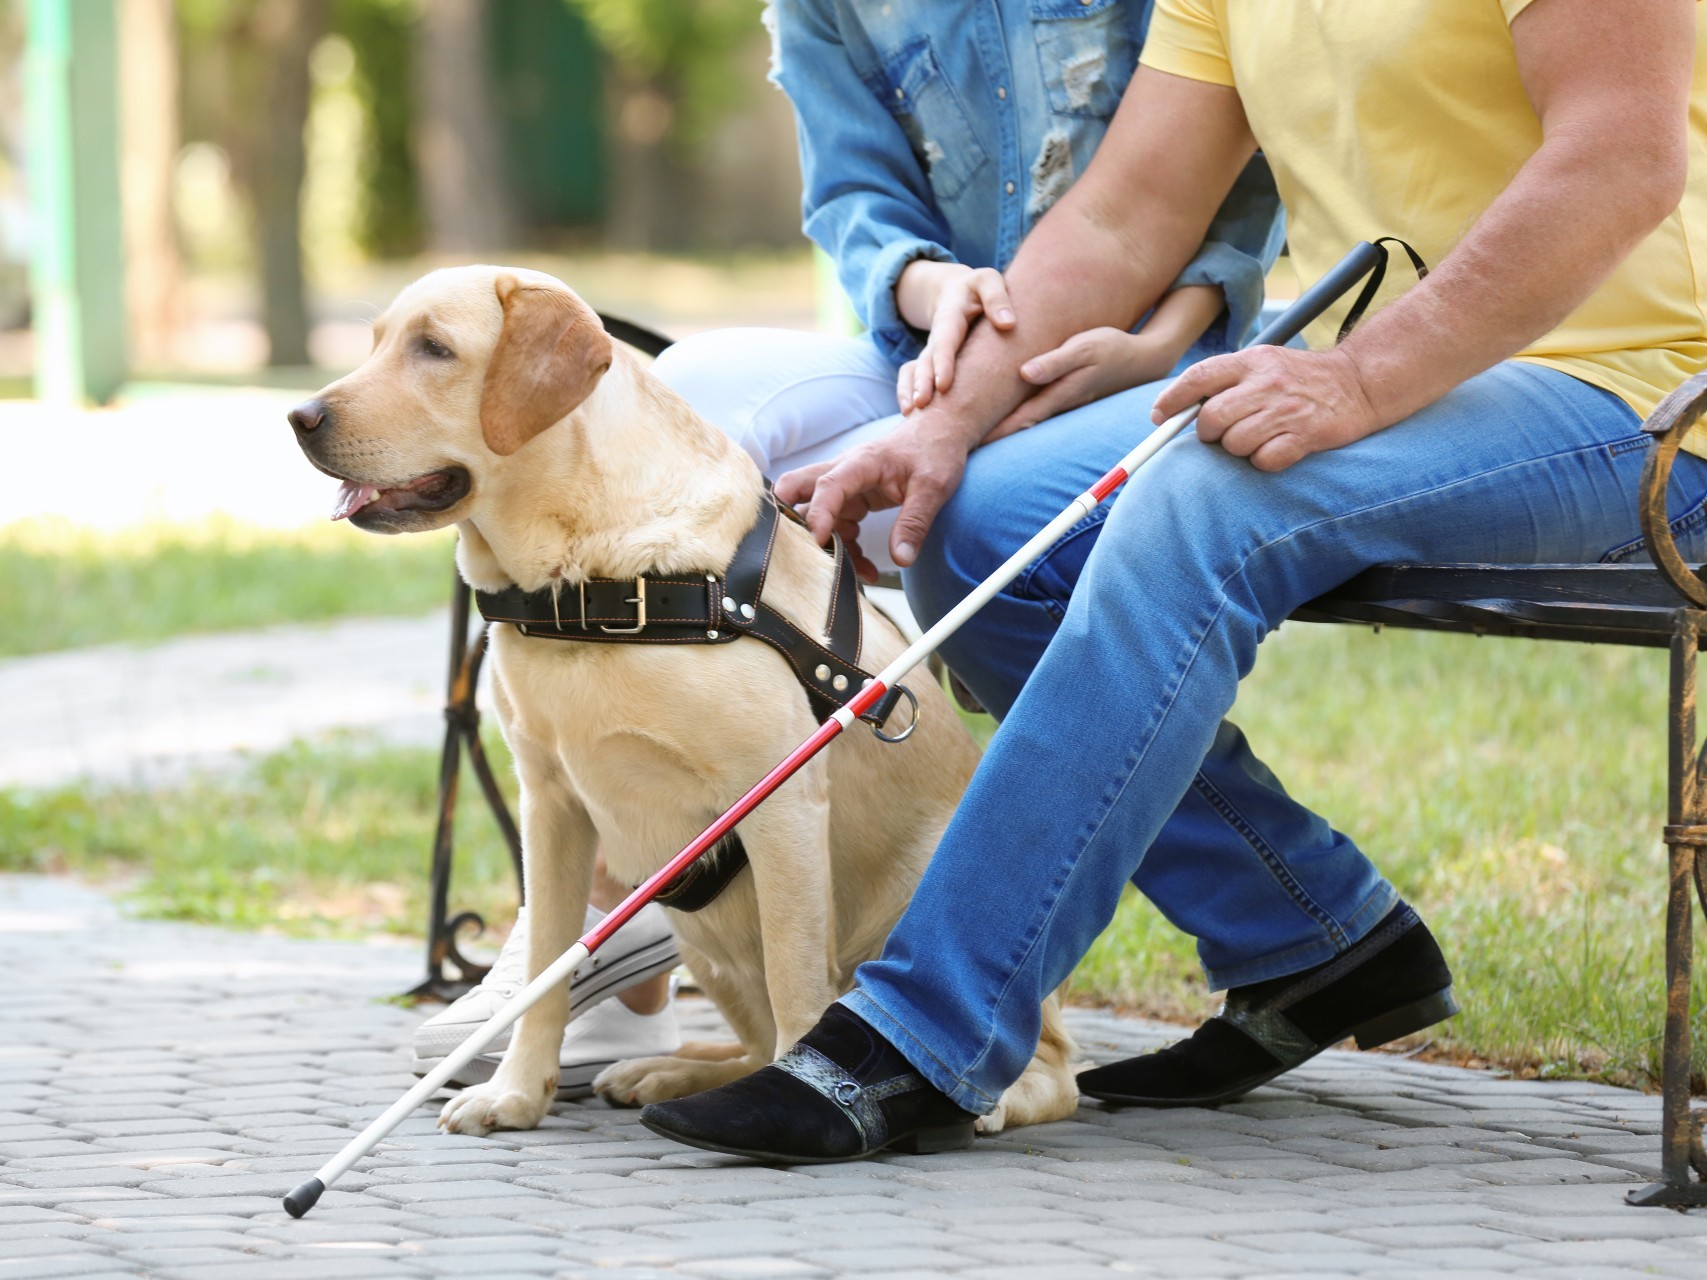 How assistance dogs can help people with disability